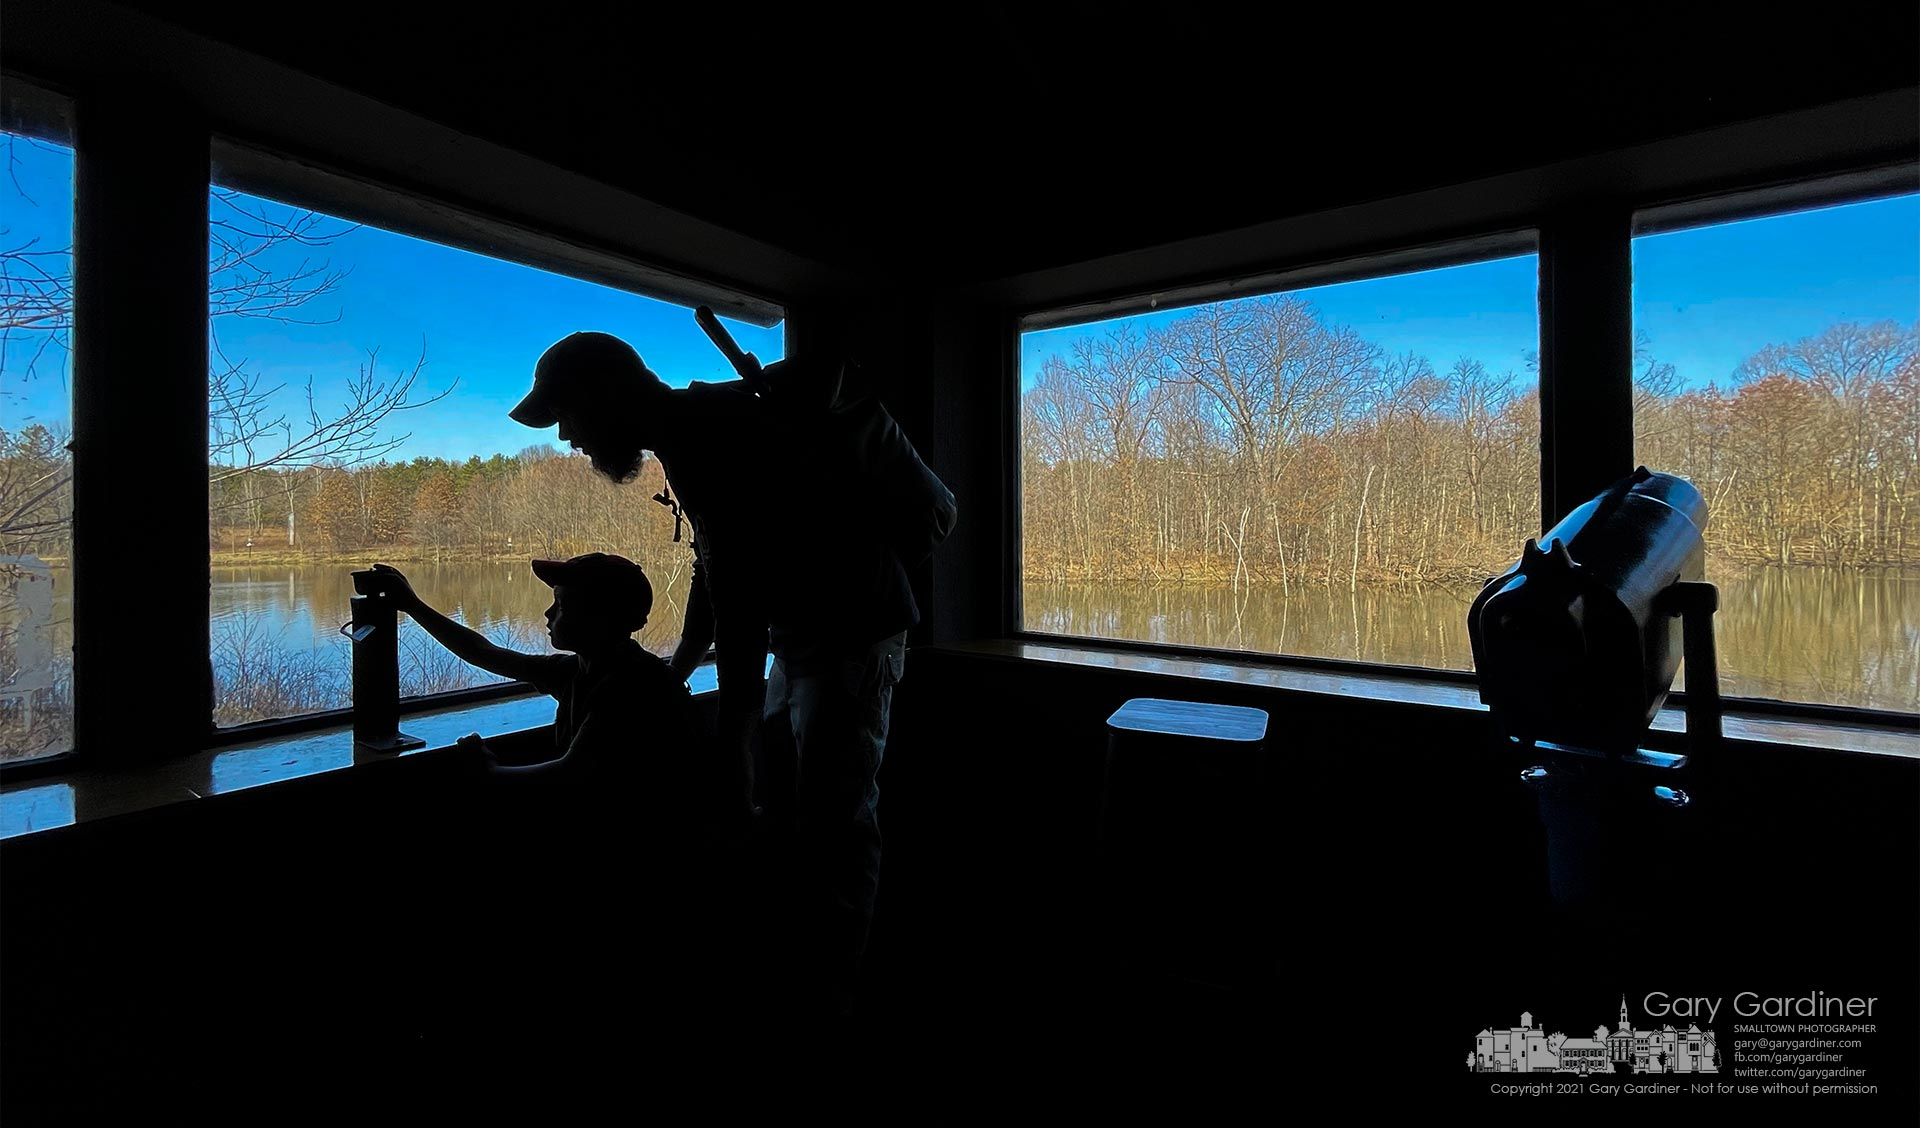 Father and son inspect a camera mount in the observation stand at Thoreau Pond in Blendon Woods Metro Park on Sunday afternoon. My Final Photo for March 21, 2021.